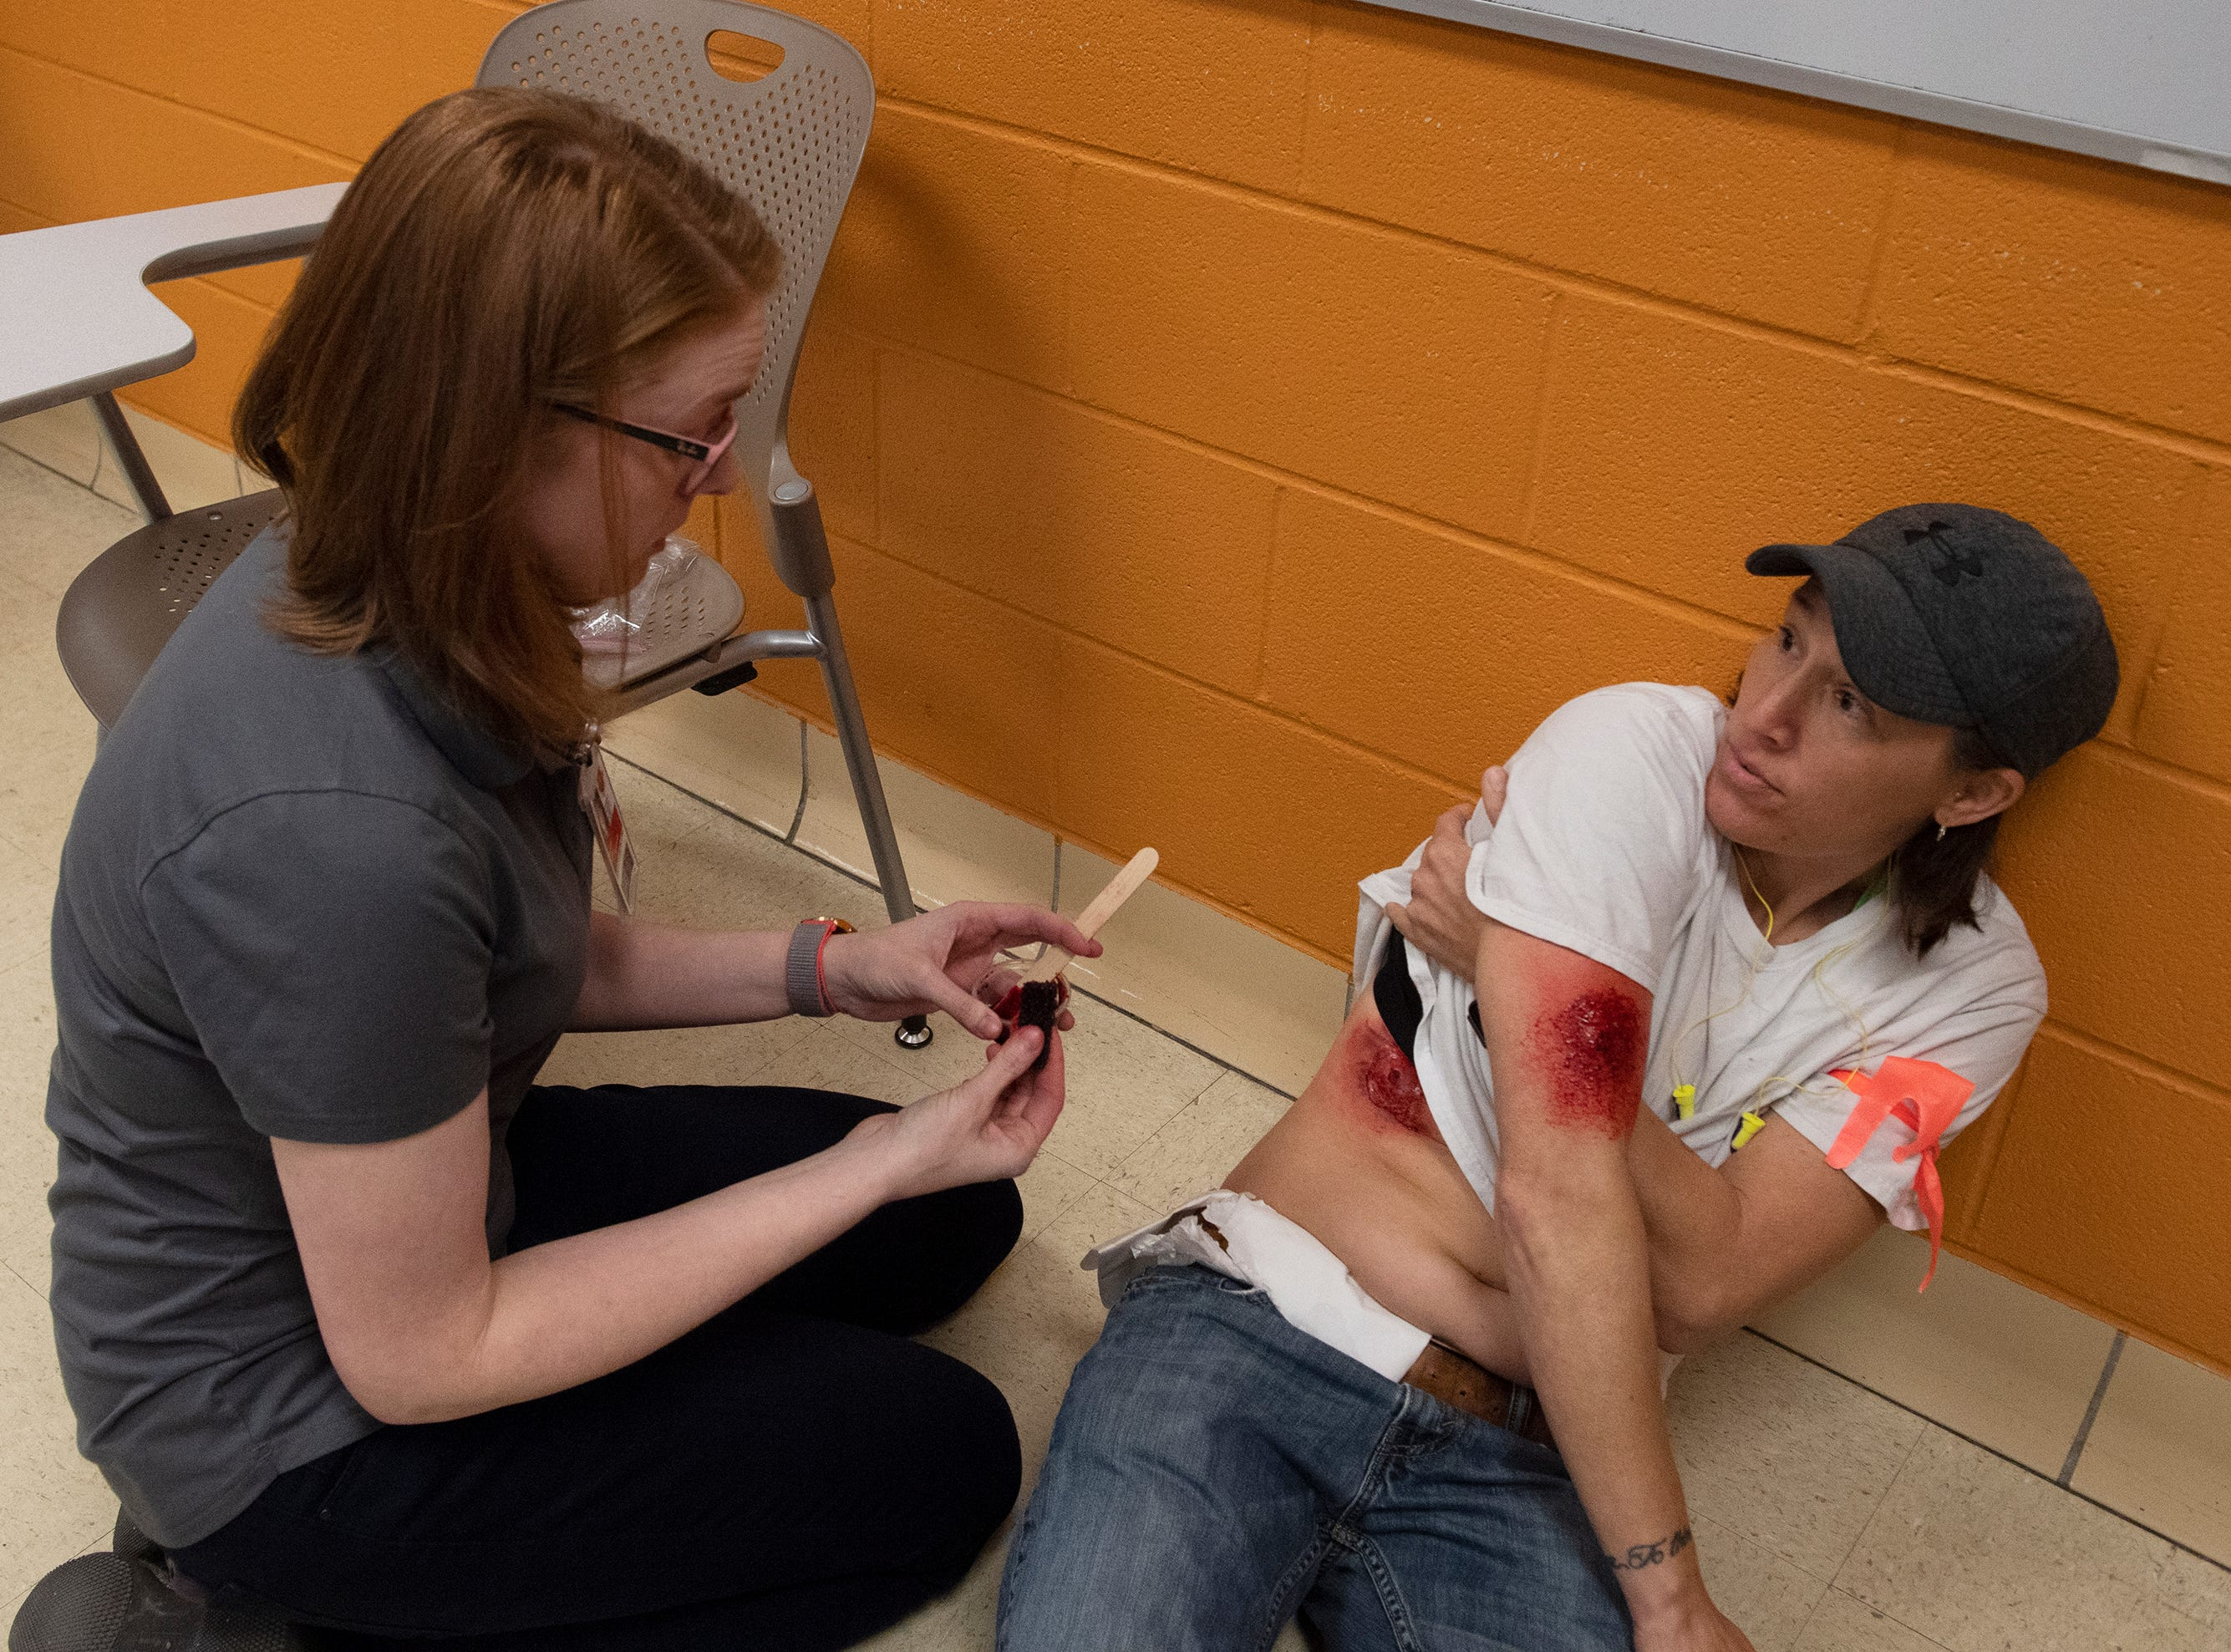 Jennifer Thackston (left), a paramedic and firefighter at Clemson University, applies make-up to simulate wounds on Jennifer Dickson, from the Fork Rescue Squad, in preparation for an active shooter exercise at Clemson Tuesday, Mar. 19, 2019. Dickson was one of the many people role-playing as victims inside Daniel Hall.